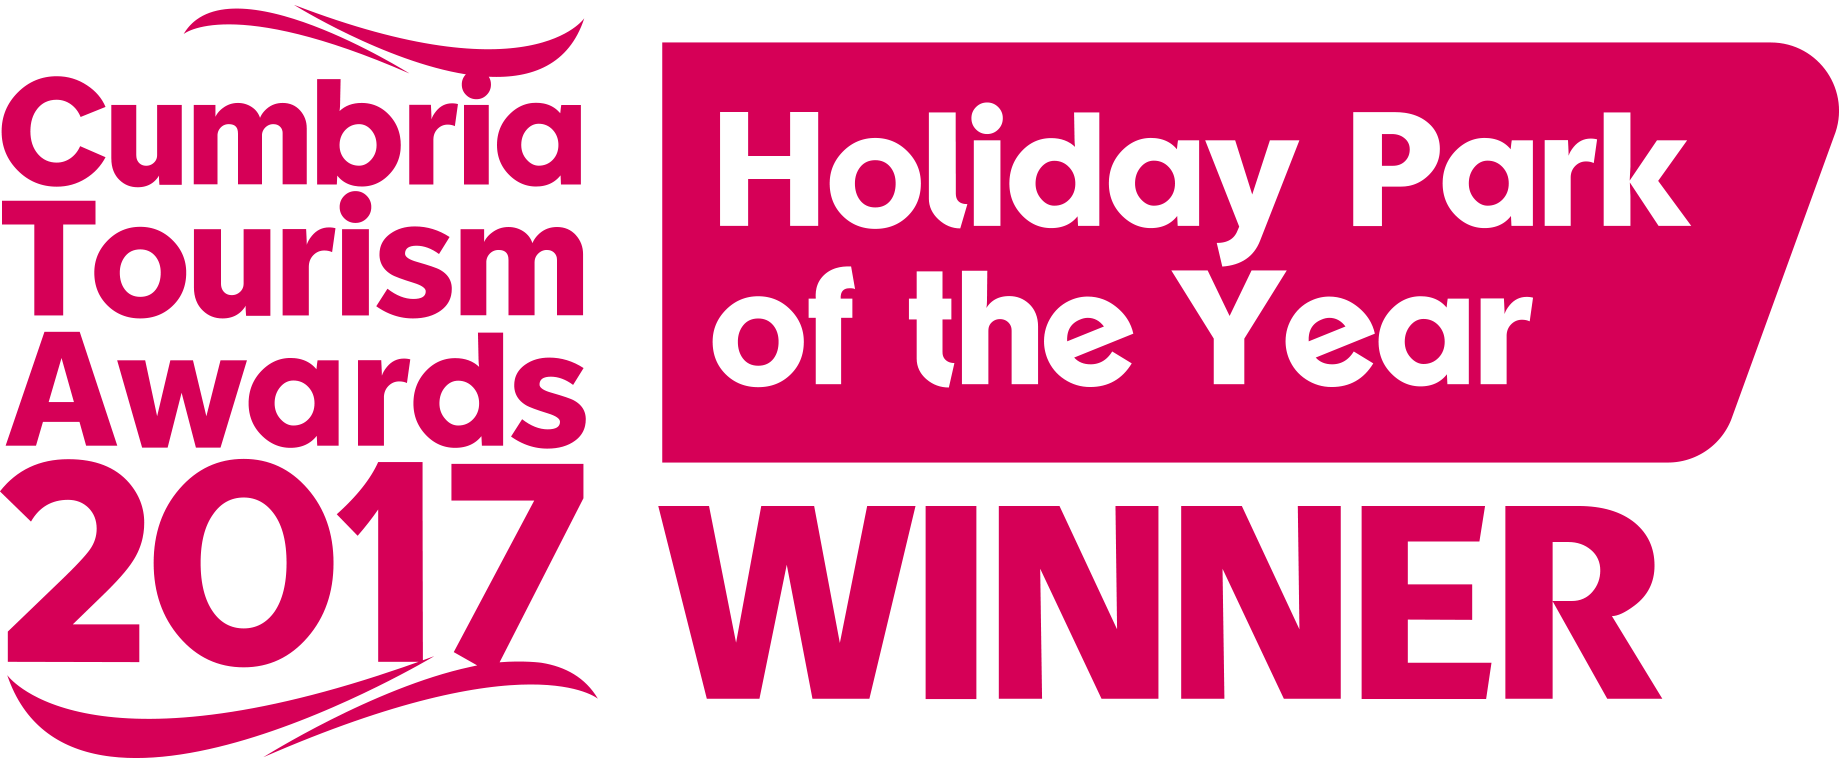 Cumbria Holiday Park of the Year